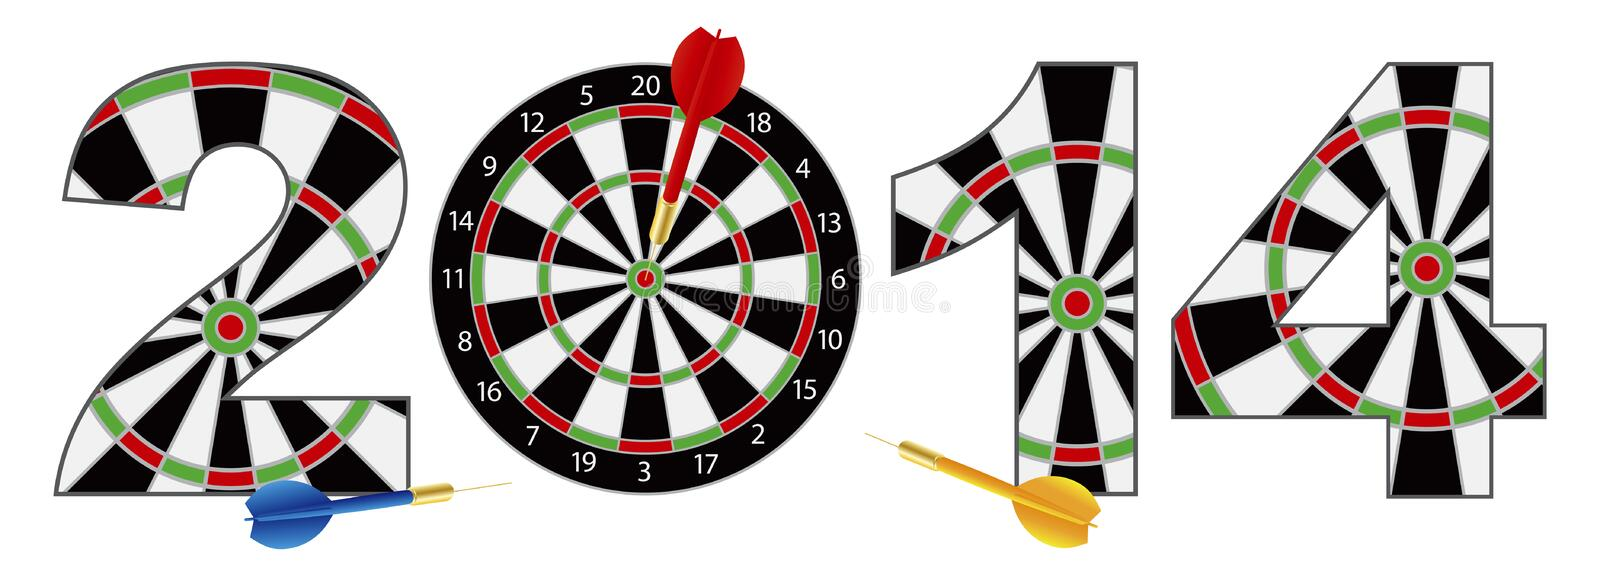 Download 2014 New Year Dartboard With Darts Illustration Stock Vector - Image: 28628609